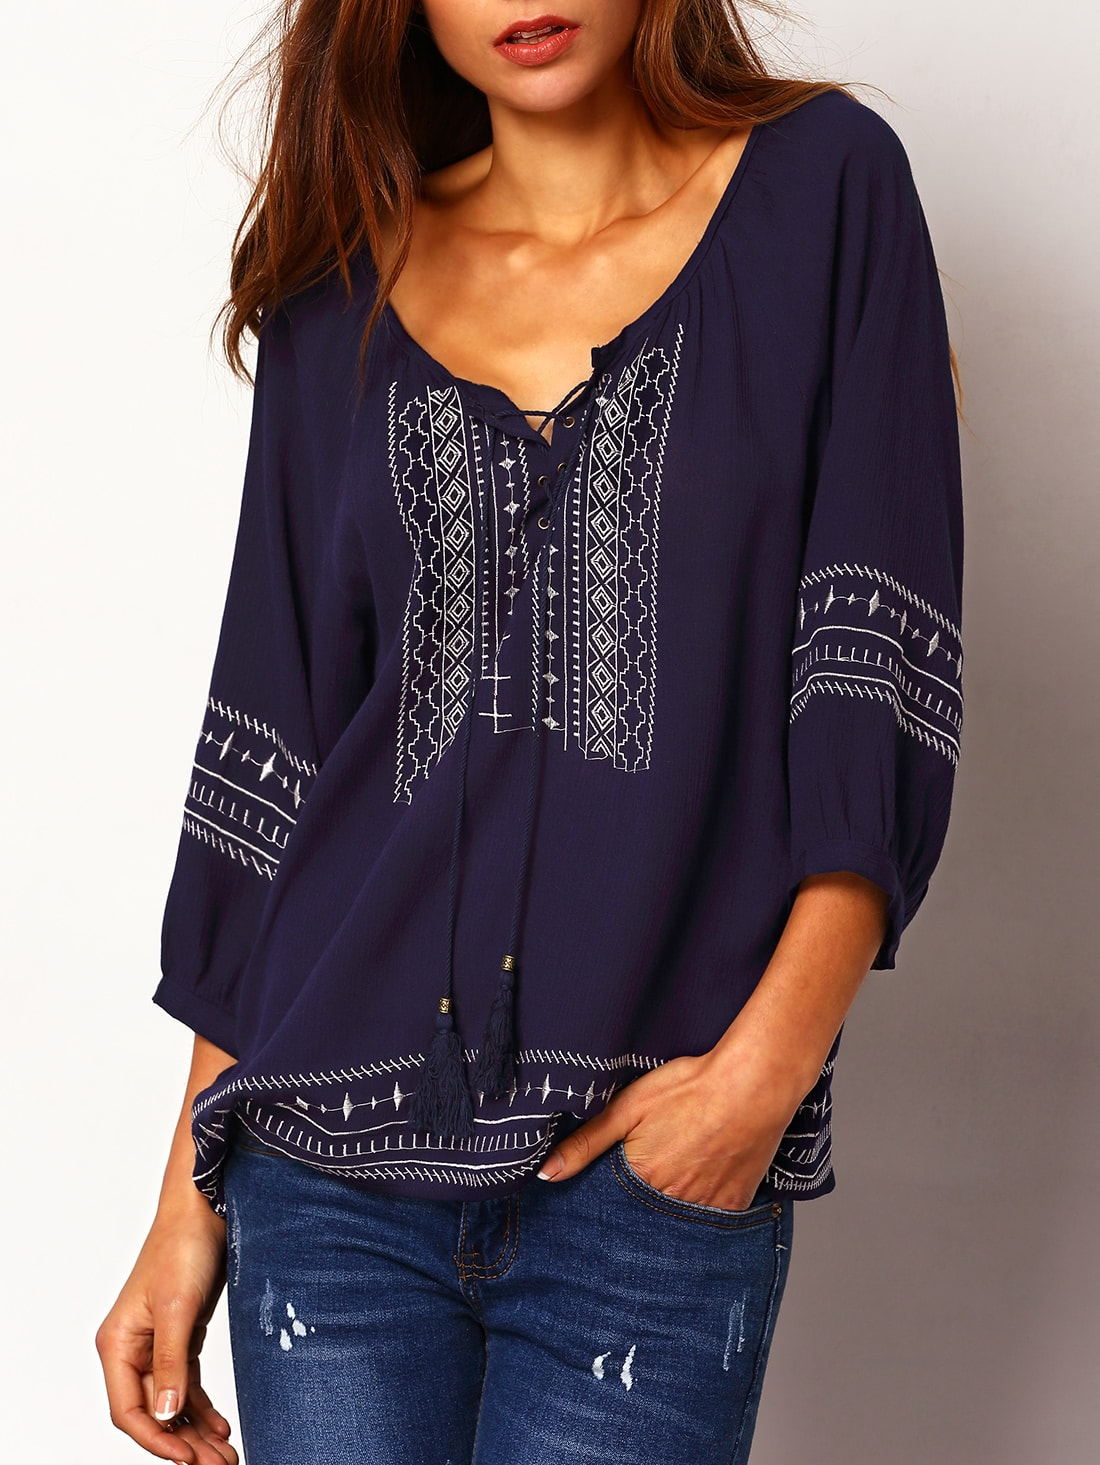 Lace Up Embroidered Loose Blouse